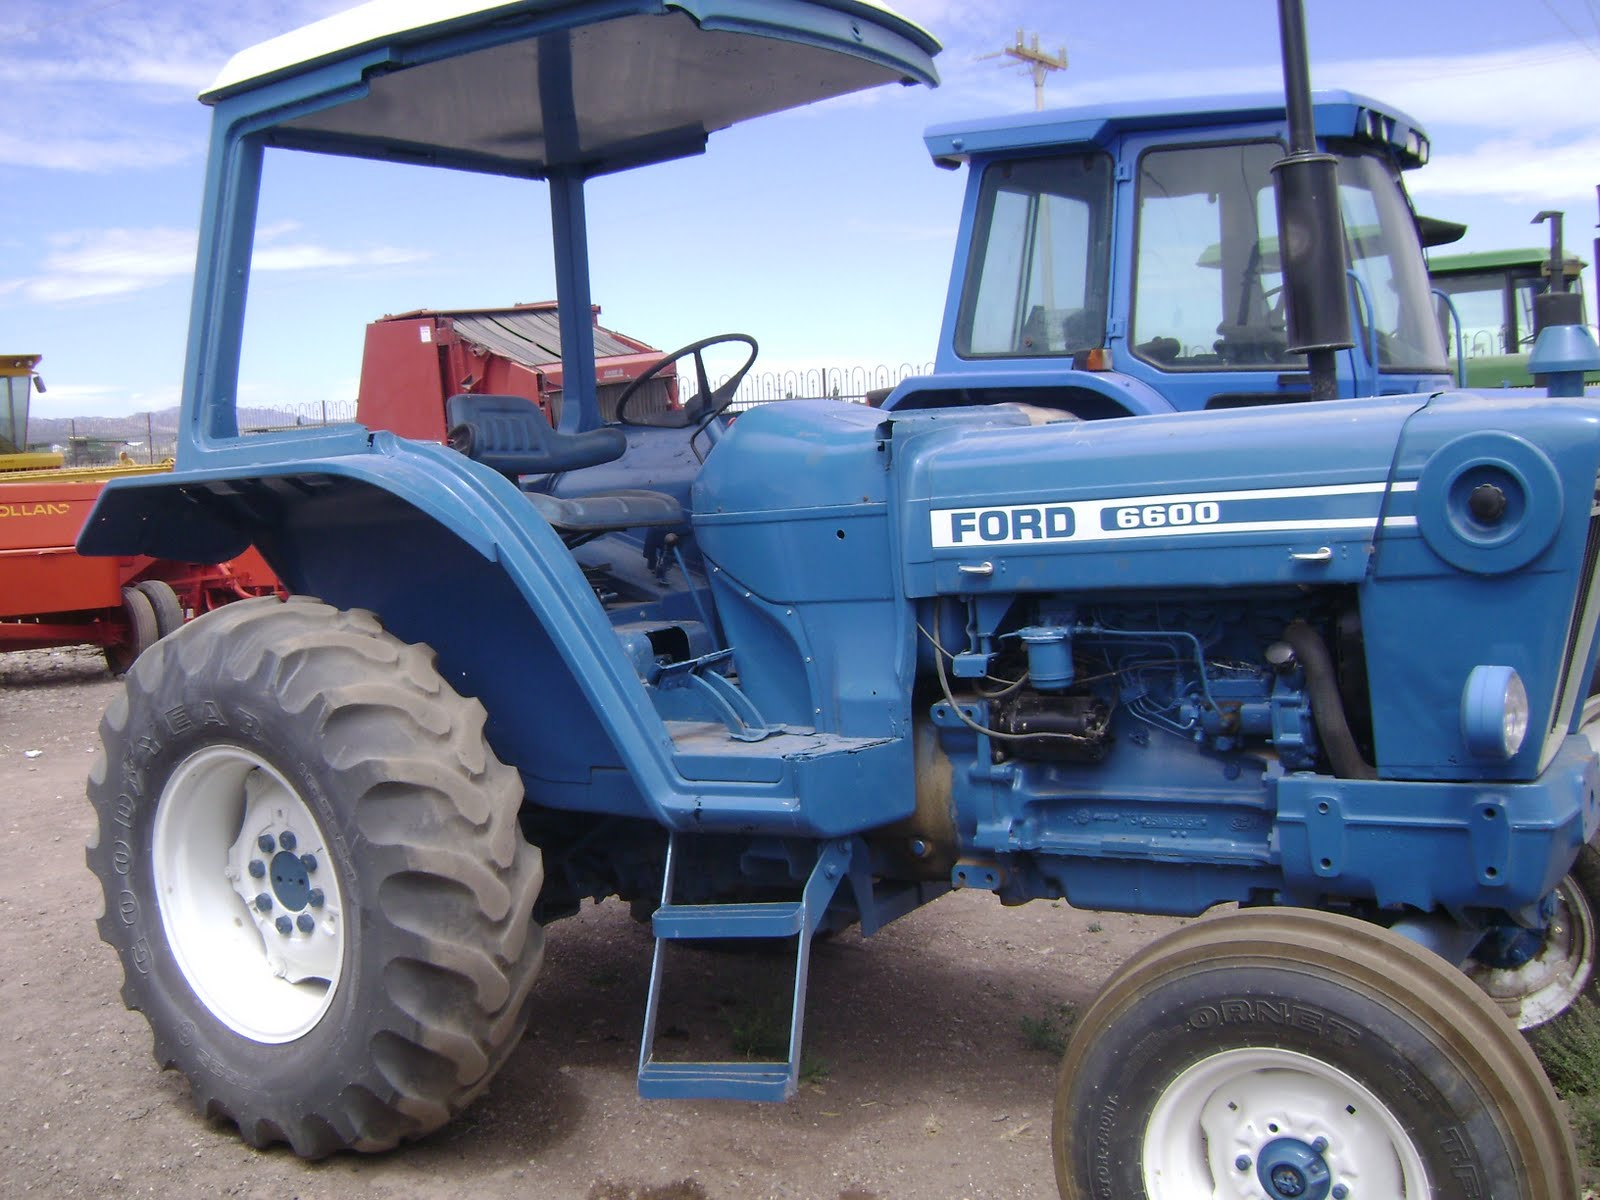 Ford 6600 Tractor : Maquinaria agricola industrial tractor ford pjcw